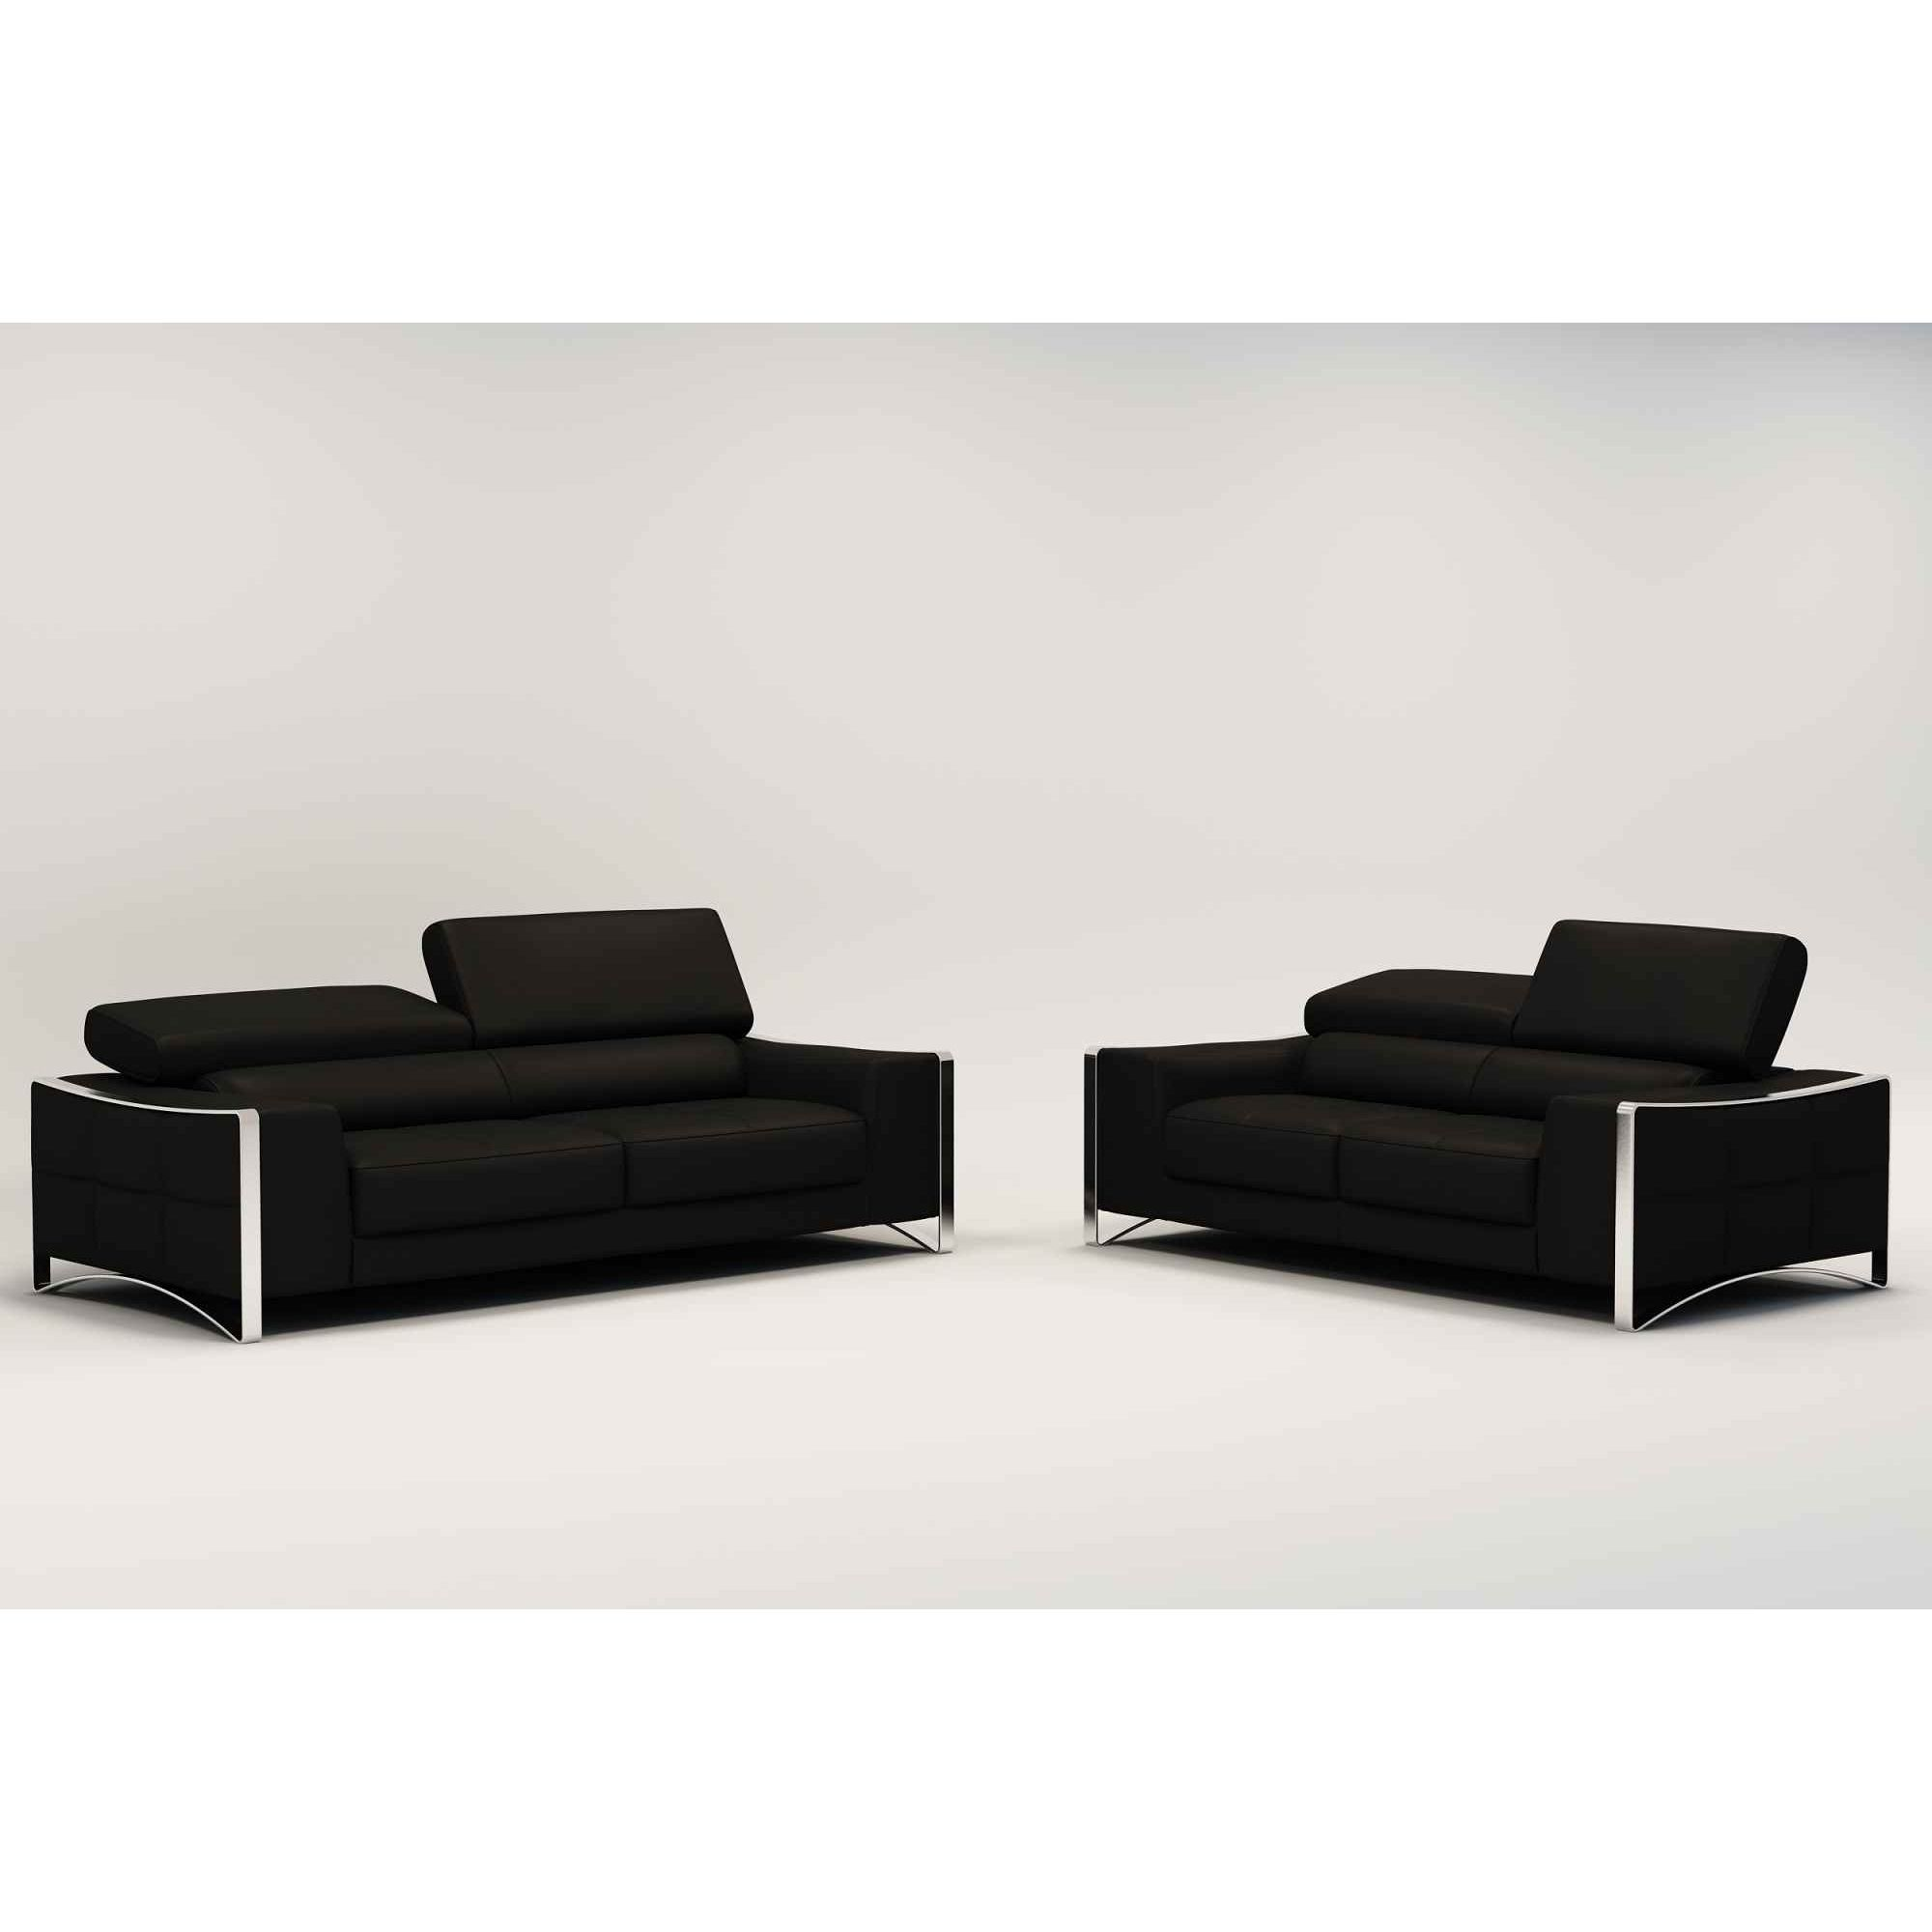 Deco in paris ensemble canape cuir 3 2 places noir for Canape cuir bordeaux 2 places